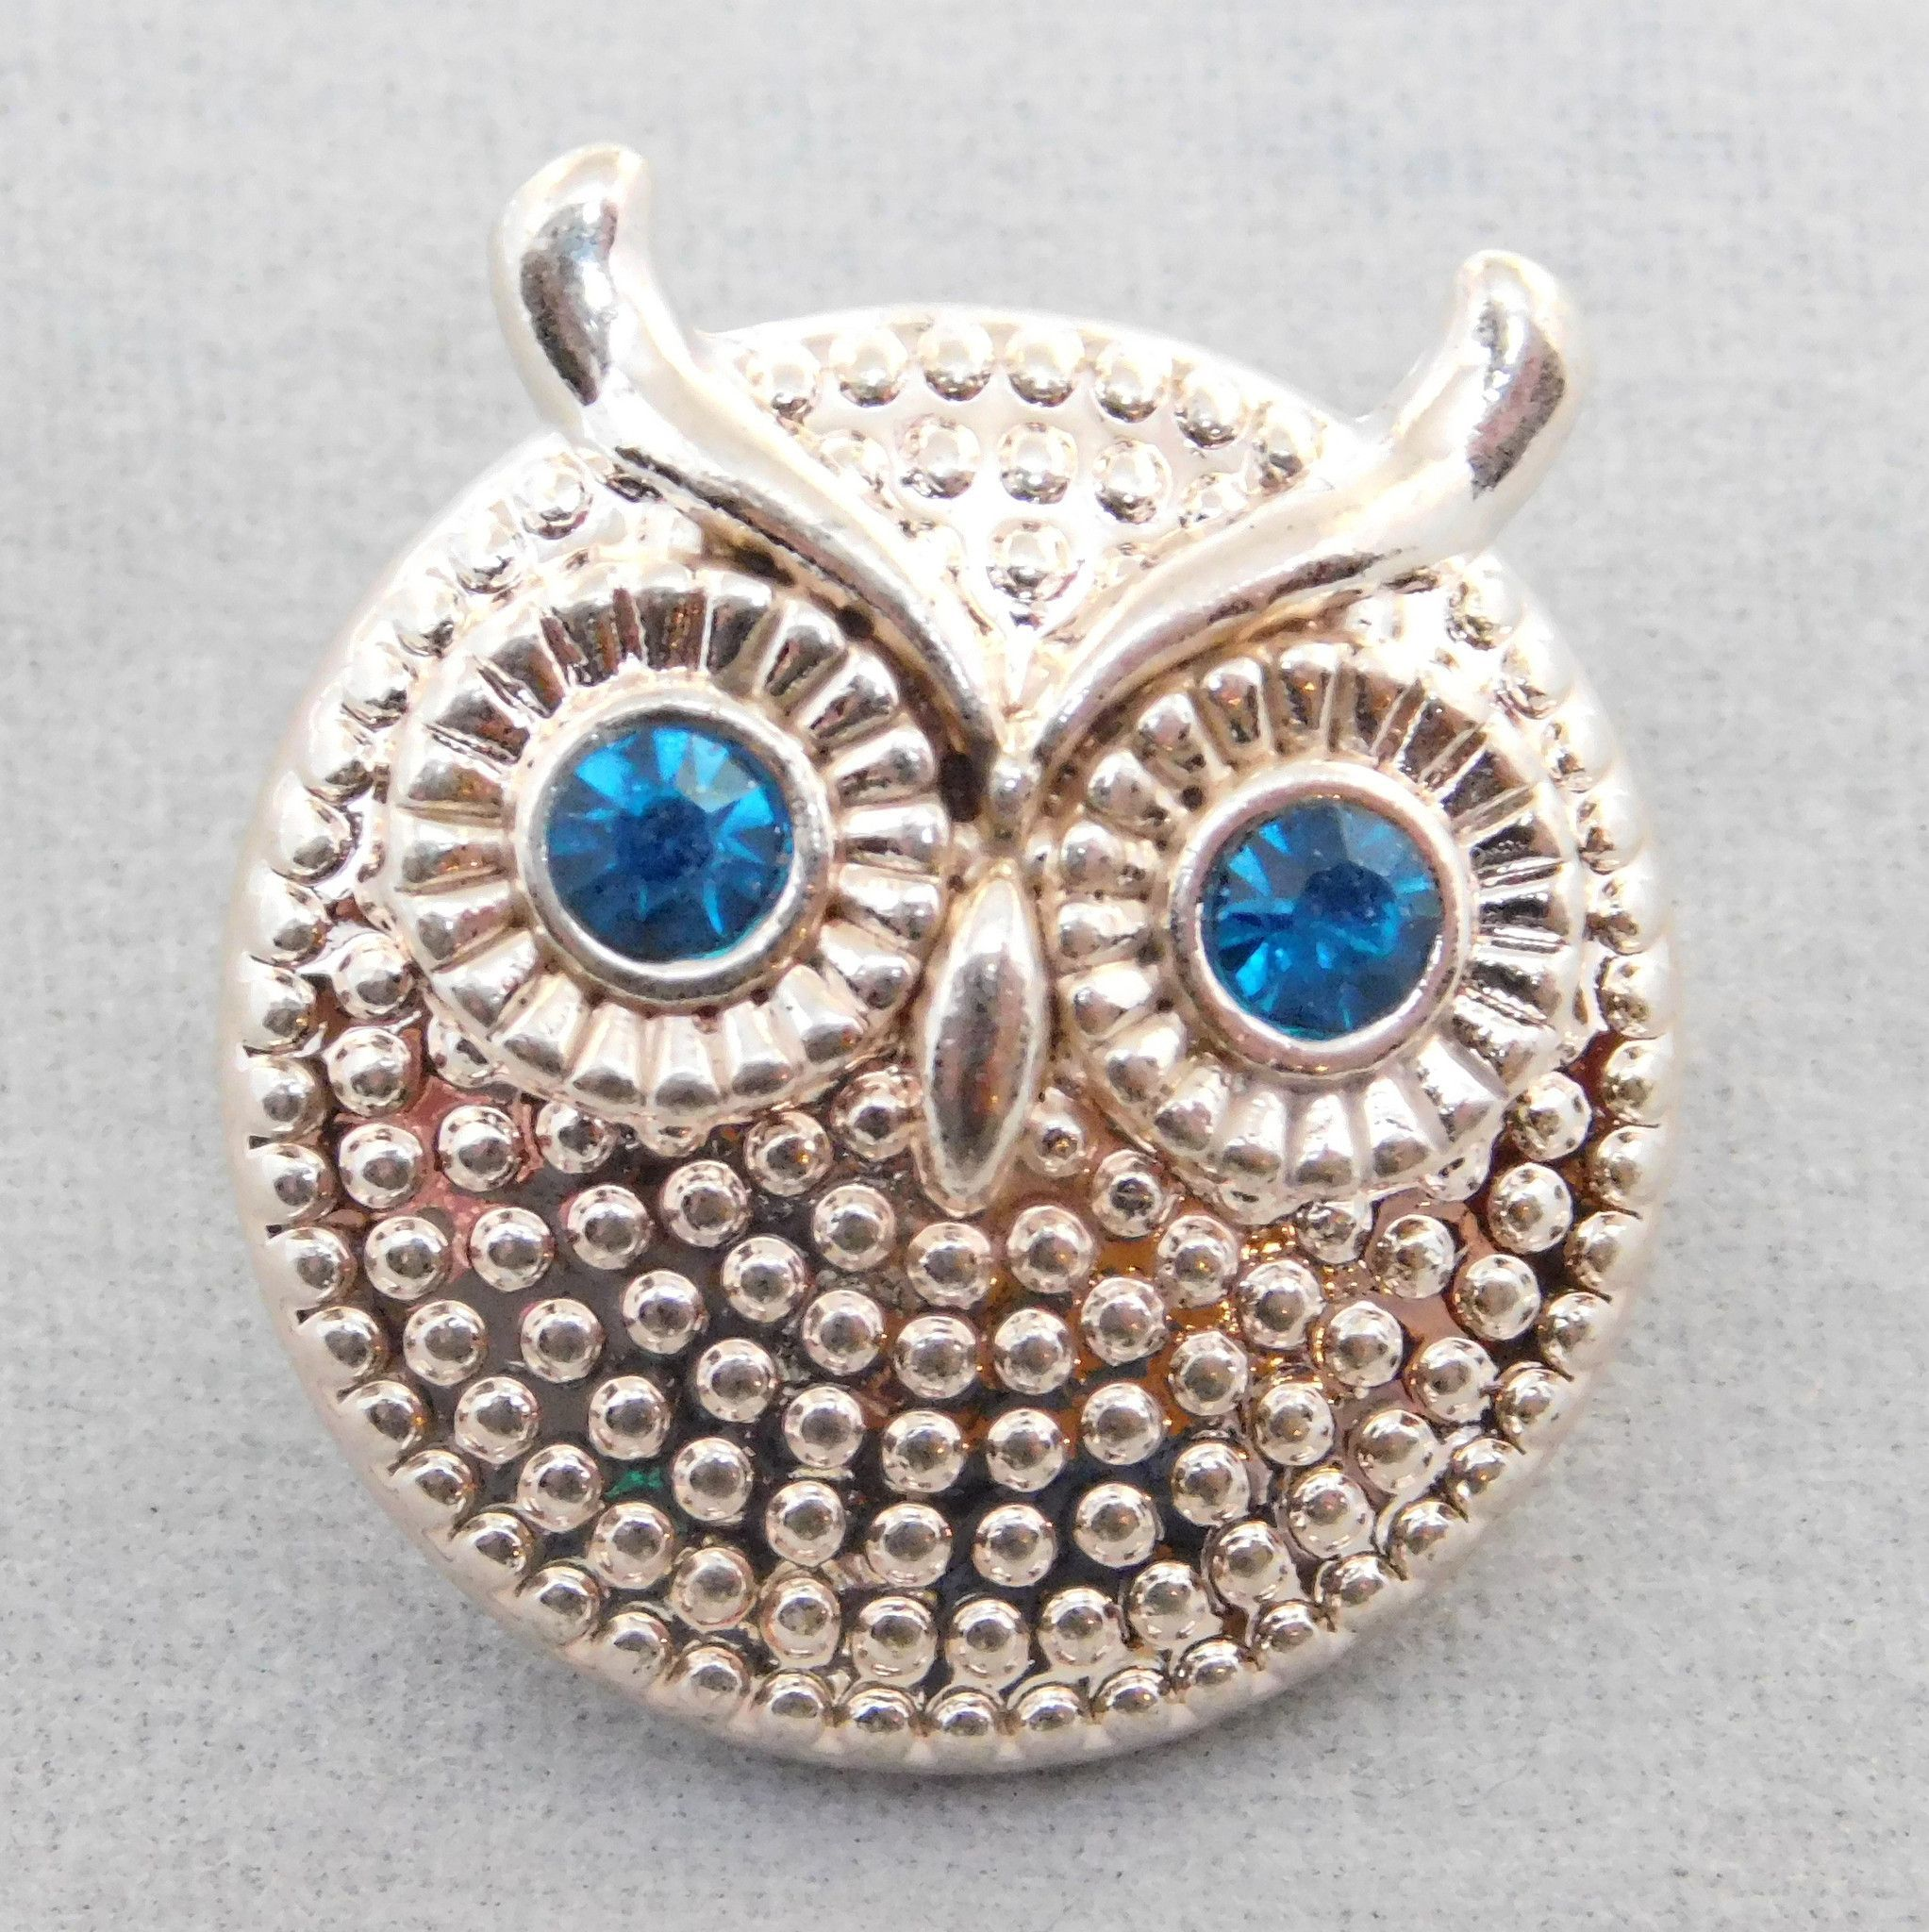 18mm Snap - Silver Owl with blue eyes - metal